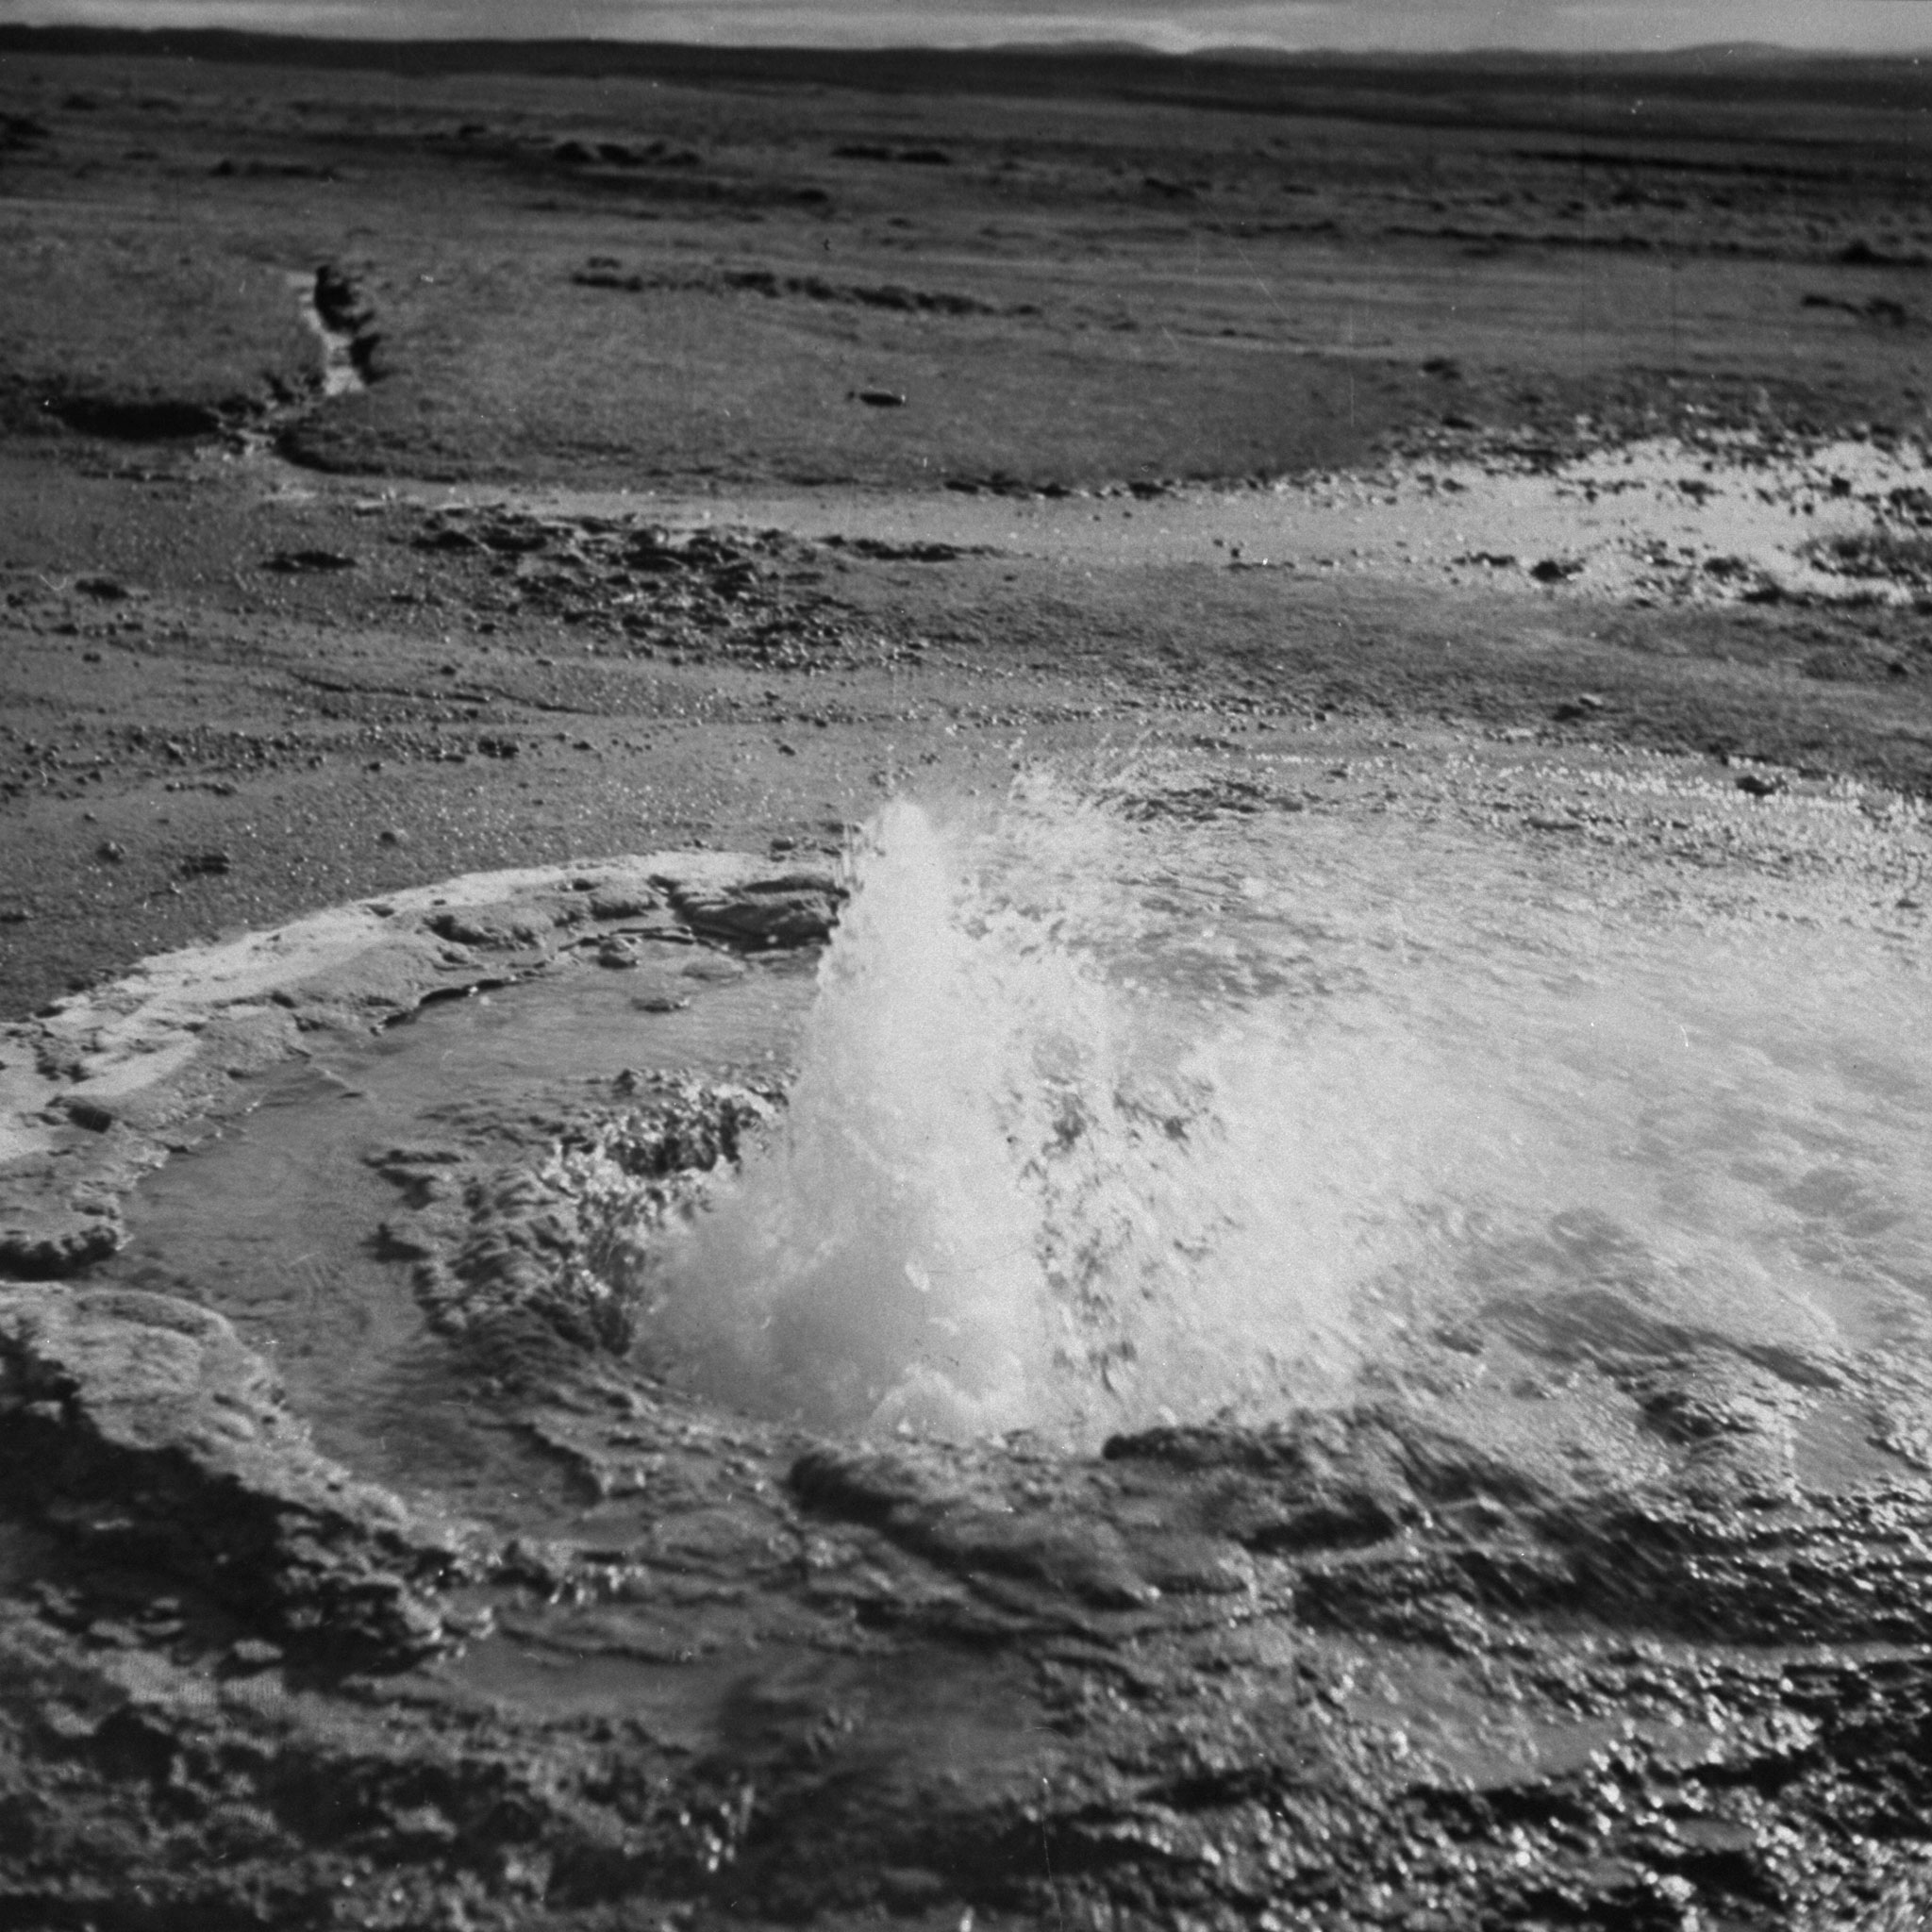 Water bubbling and boiling in a geyser.